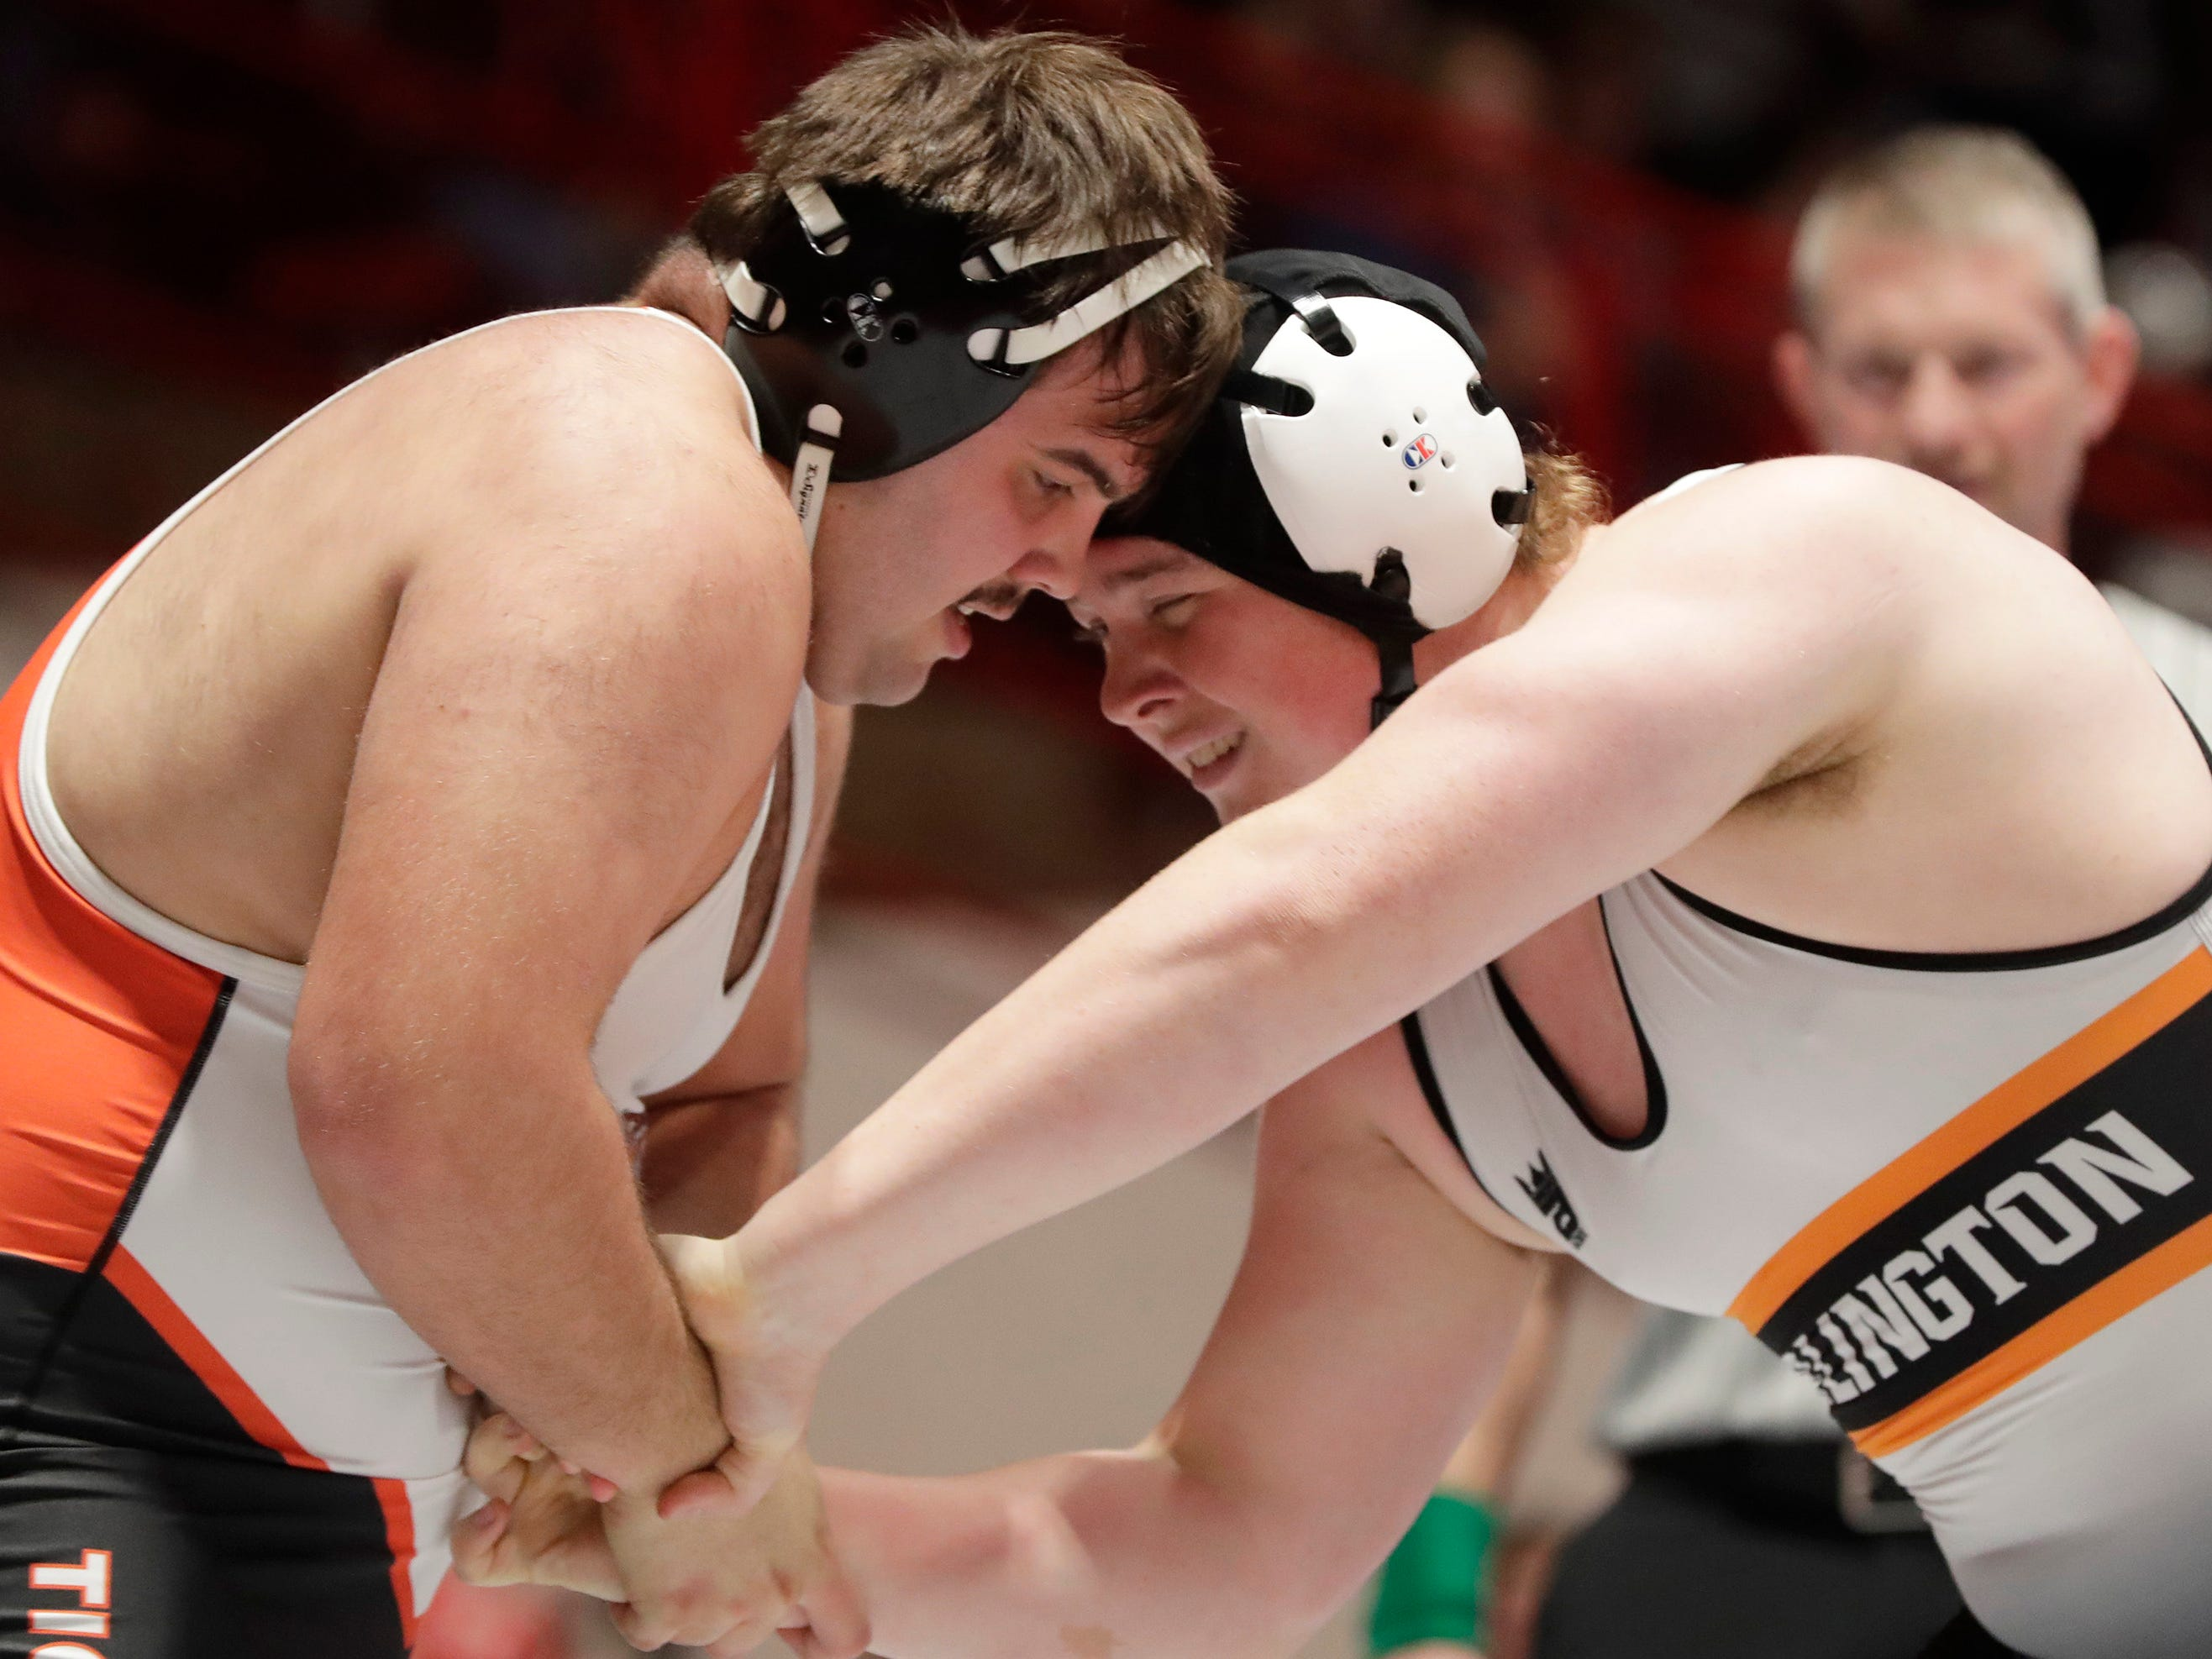 Marshfield's Samual Haessly, left, wrestles Burlington's Wyatt Hayes in a 285-pound match during a WIAA state wrestling team tournament quarterfinal at the UW Field House.